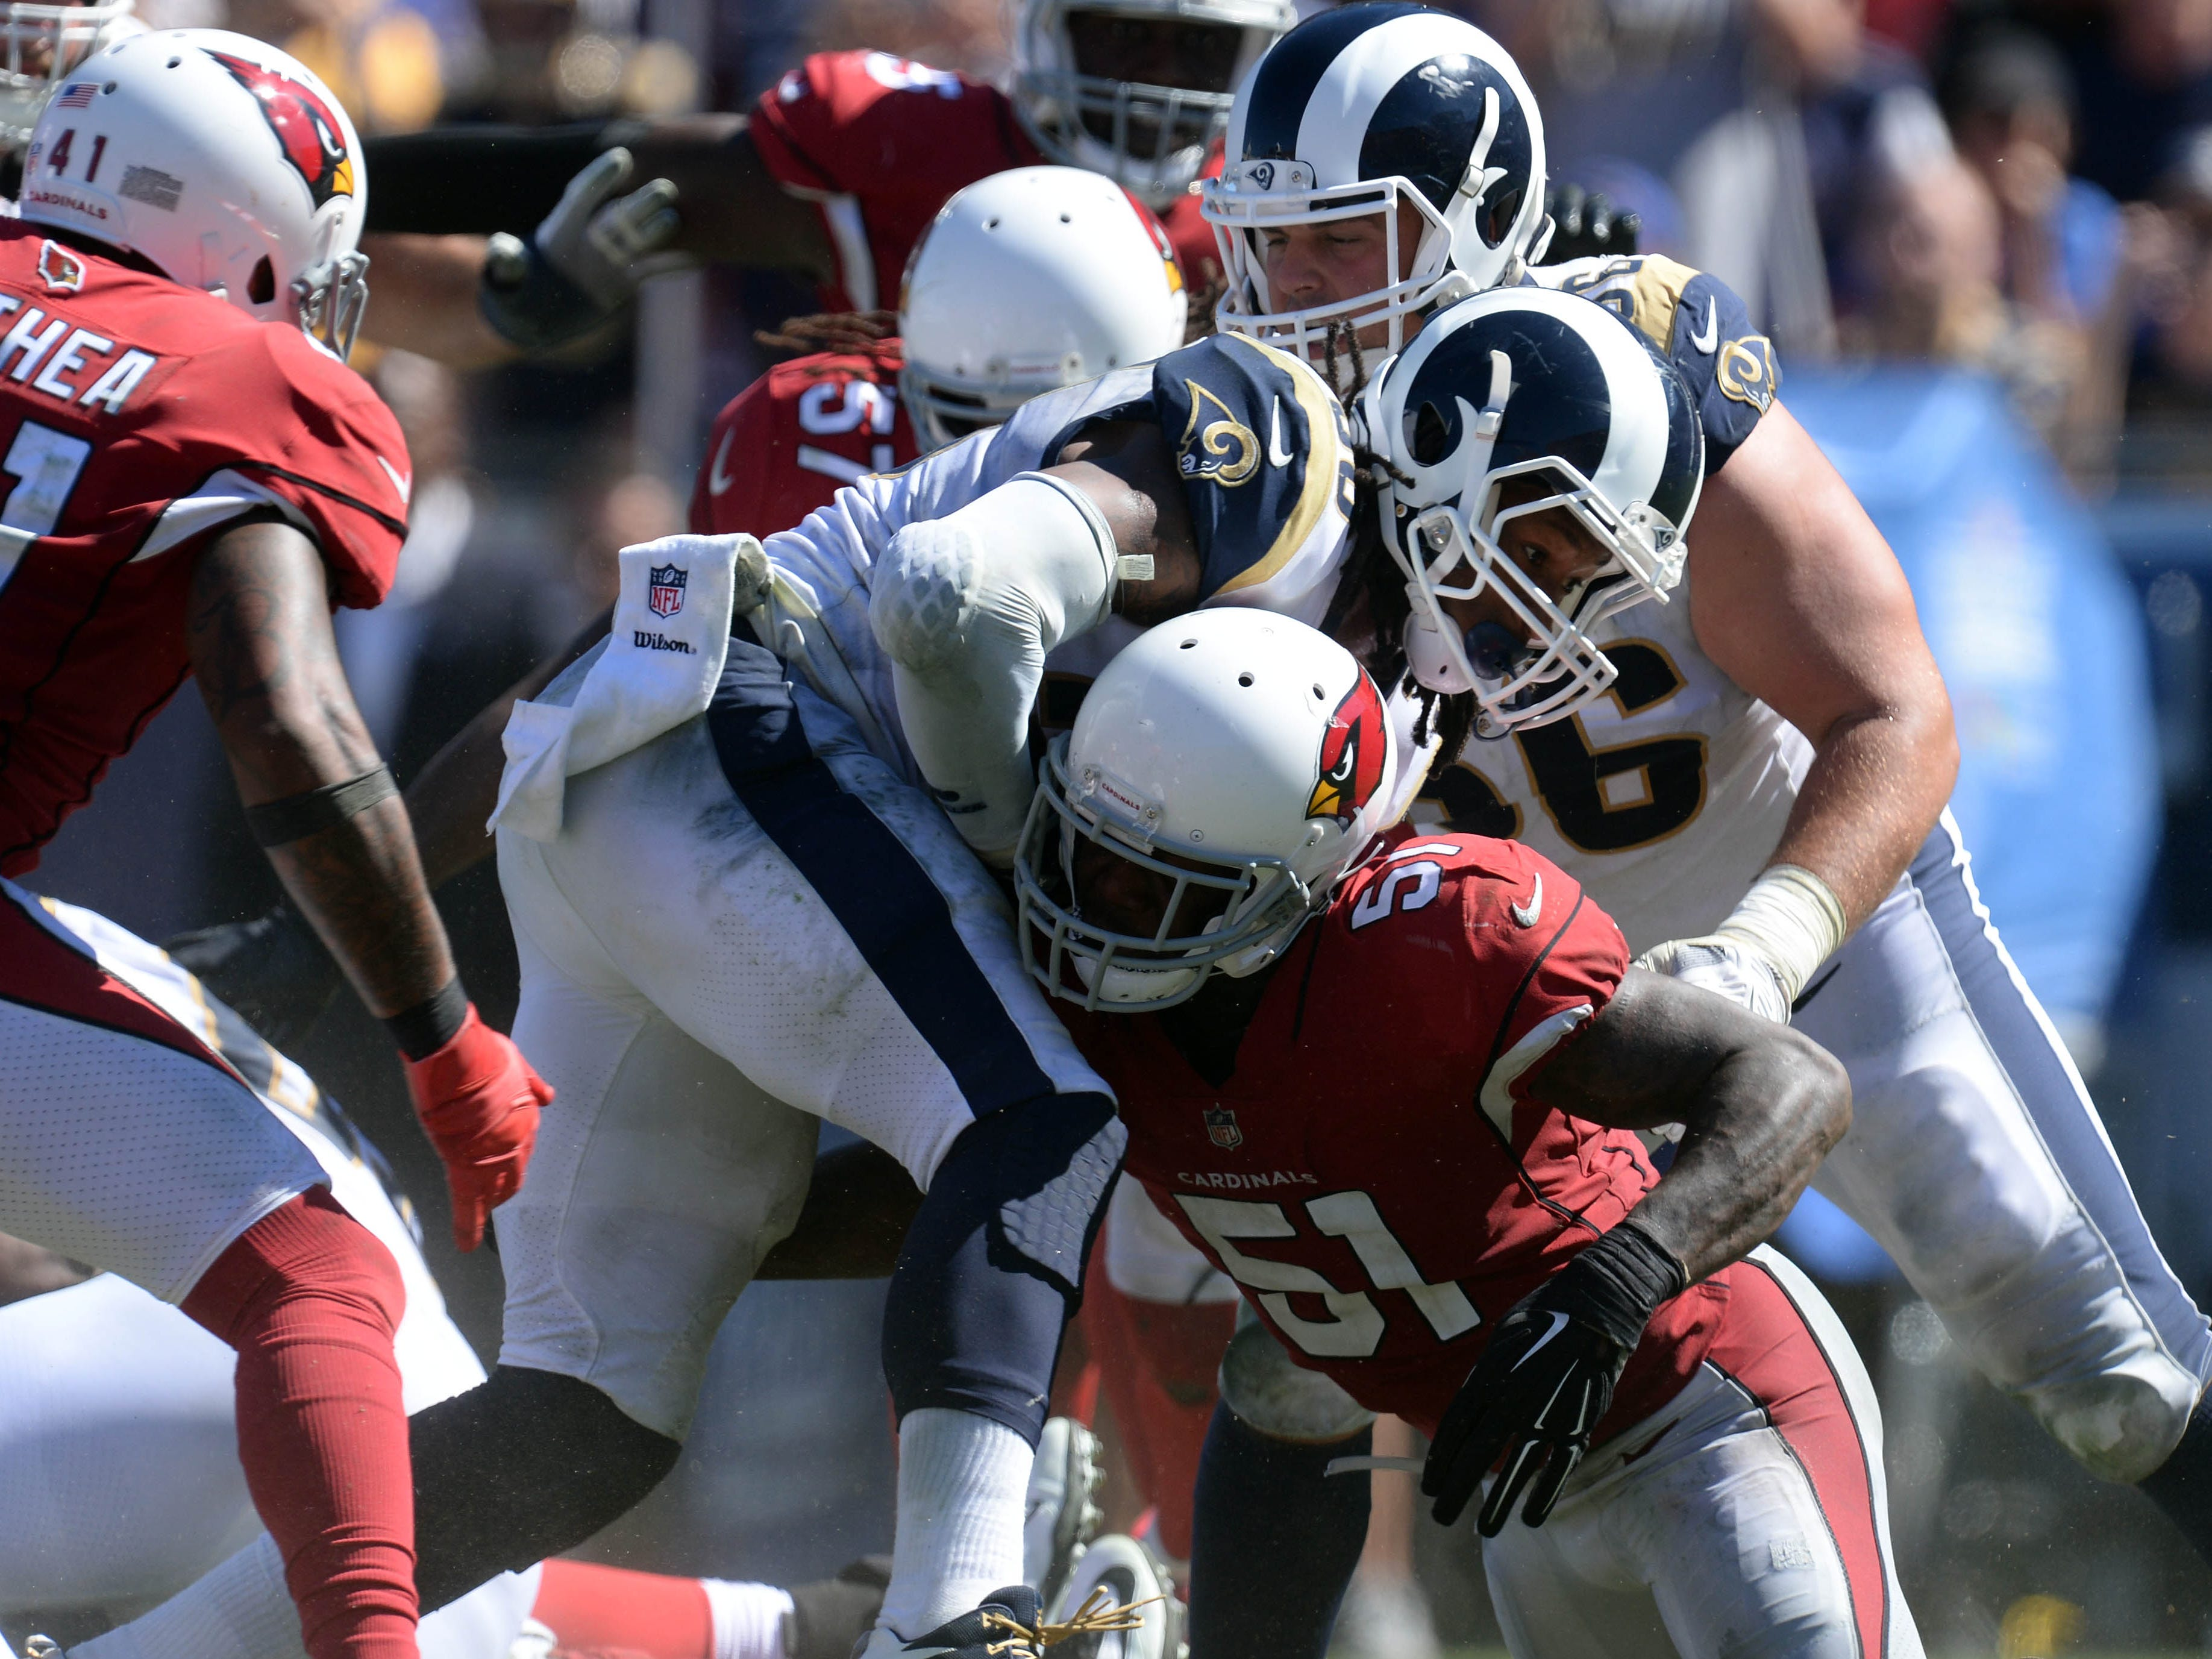 September 16, 2018; Los Angeles, CA, USA; Los Angeles Rams running back Todd Gurley (30) runs the ball against the defense of Arizona Cardinals linebacker Gerald Hodges (51) during the second half at the Los Angeles Memorial Coliseum. Mandatory Credit: Gary A. Vasquez-USA TODAY Sports